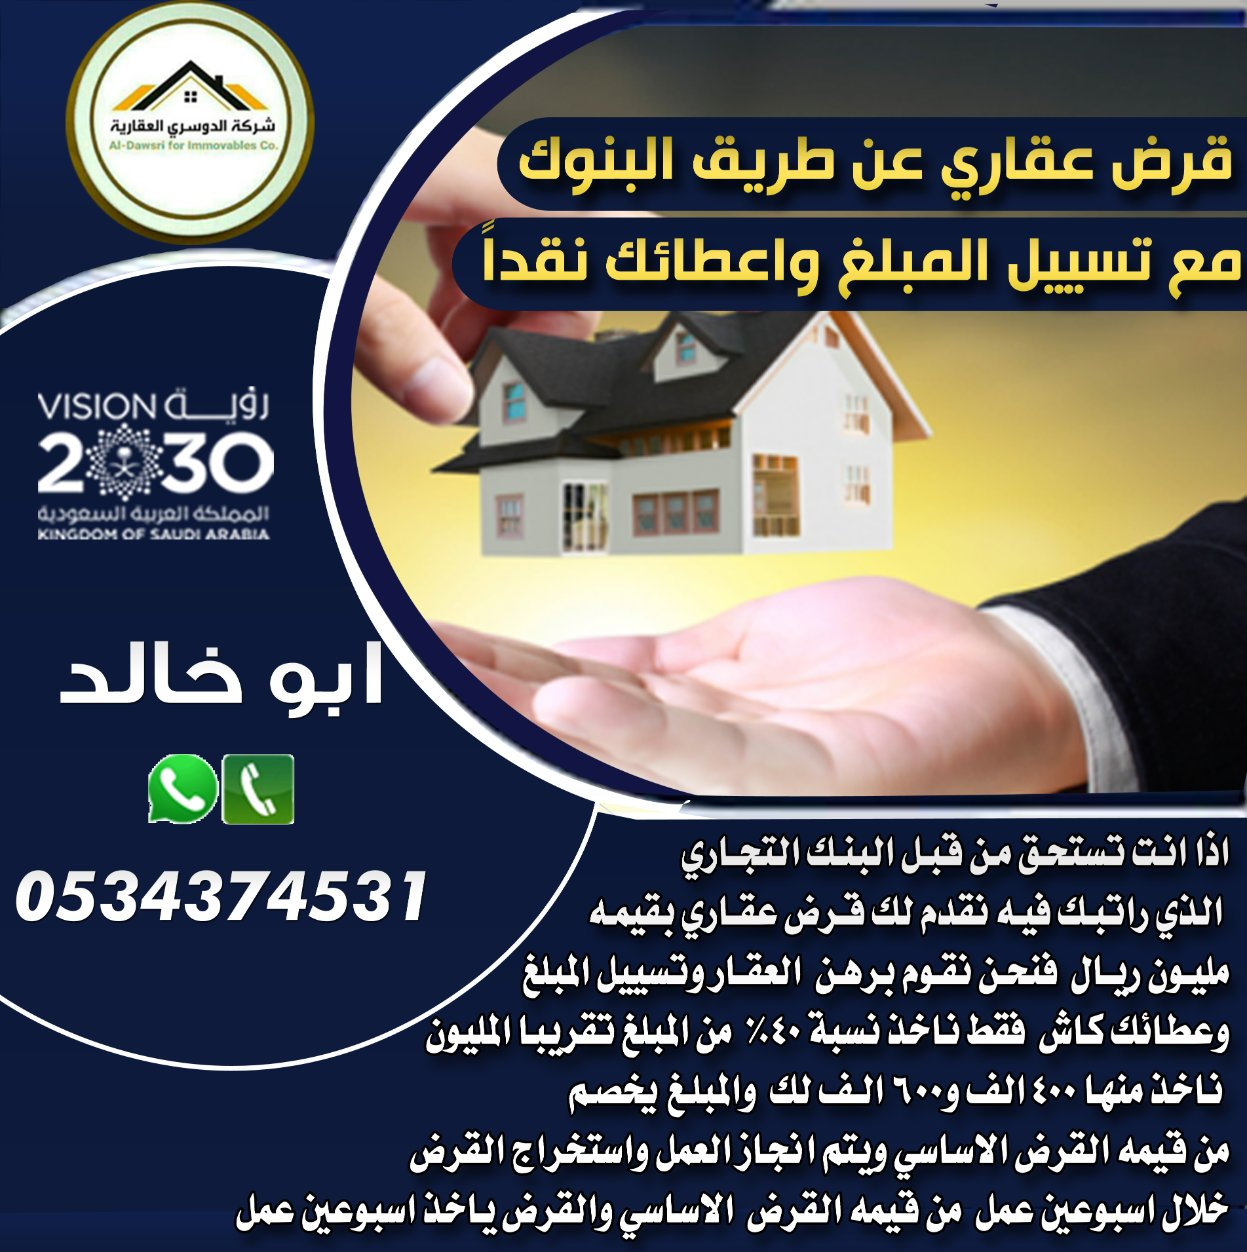 Are you in need of Urgent Loan Here no collateral required all problem regarding Loan is solve between a short period of time with a low interest rate of 2% You-  شركة الدوسري العقارية قرض...